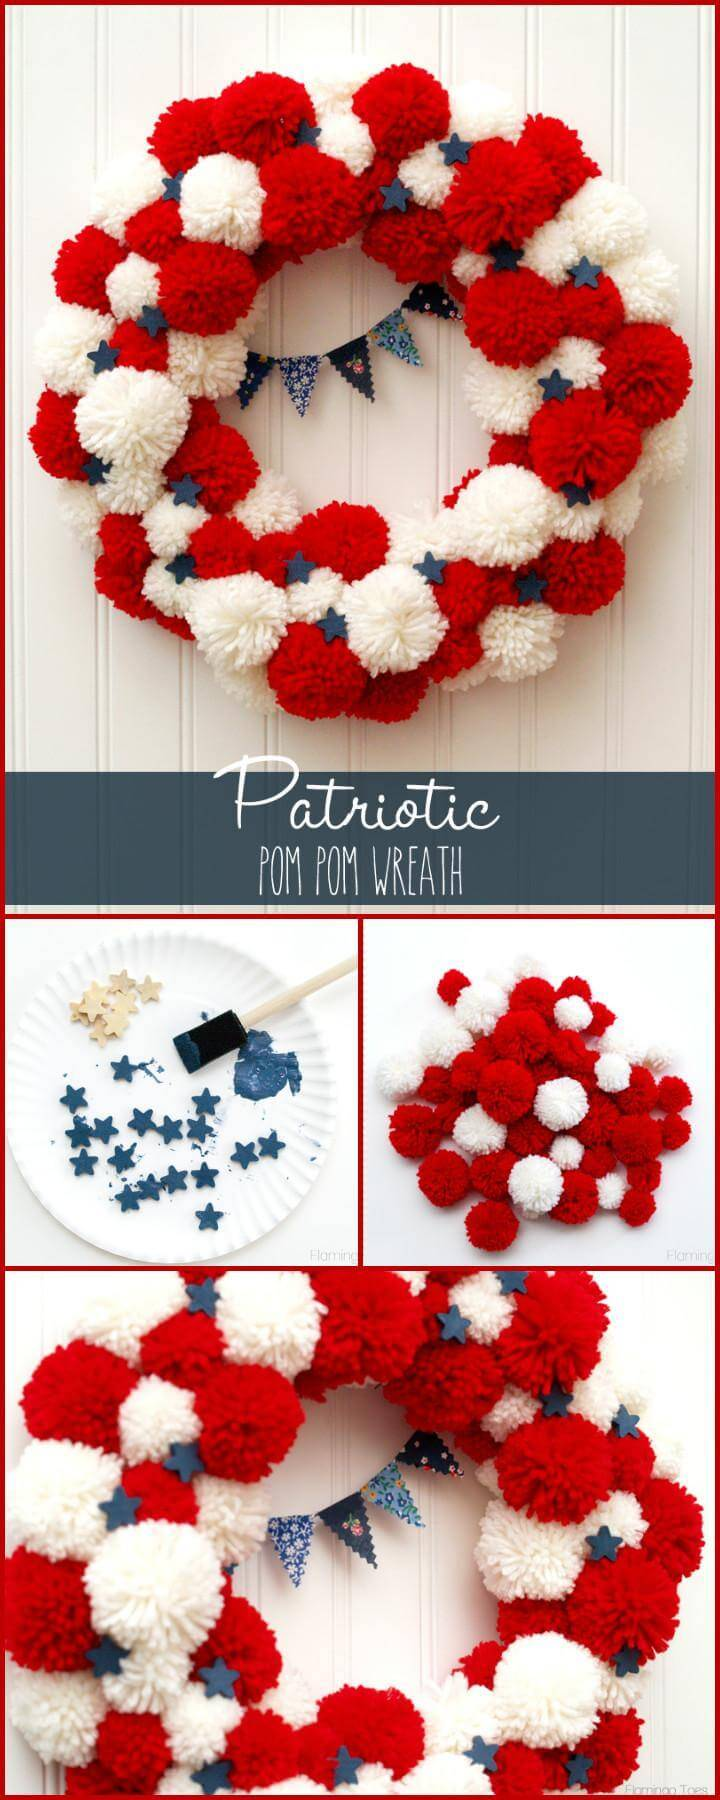 DIY Beautiful Patriotic Pom Pom Wreath